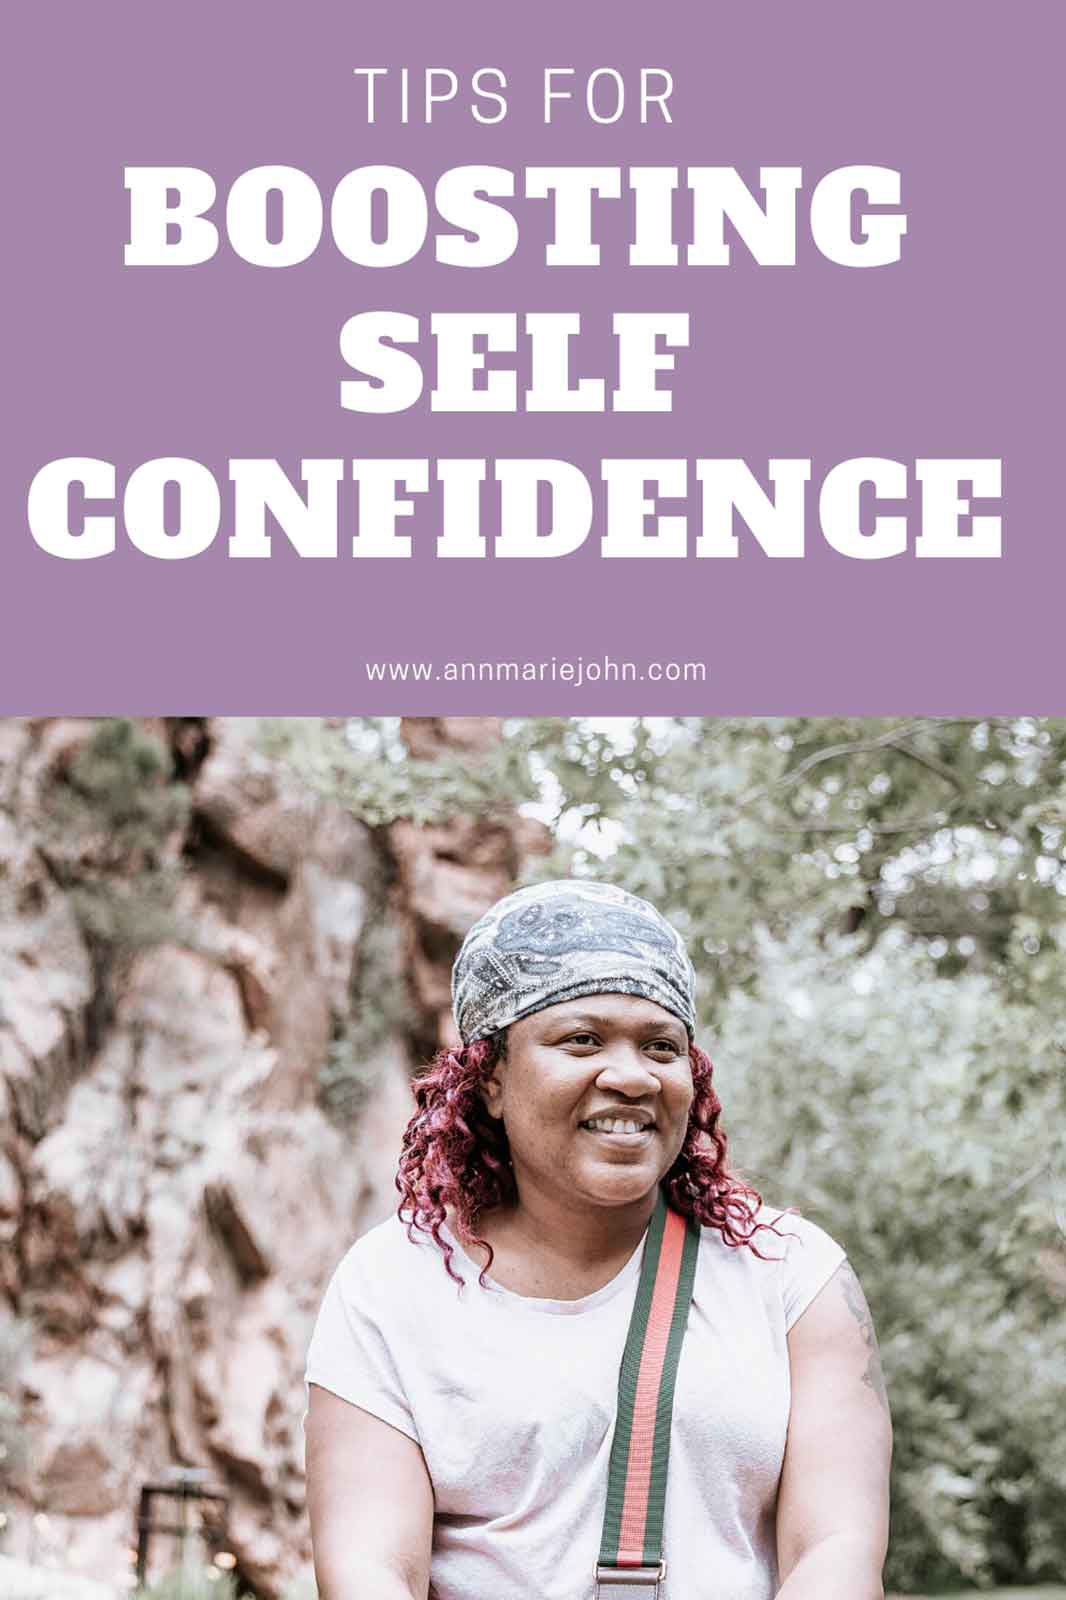 Tips for Boosting Self-Confidence